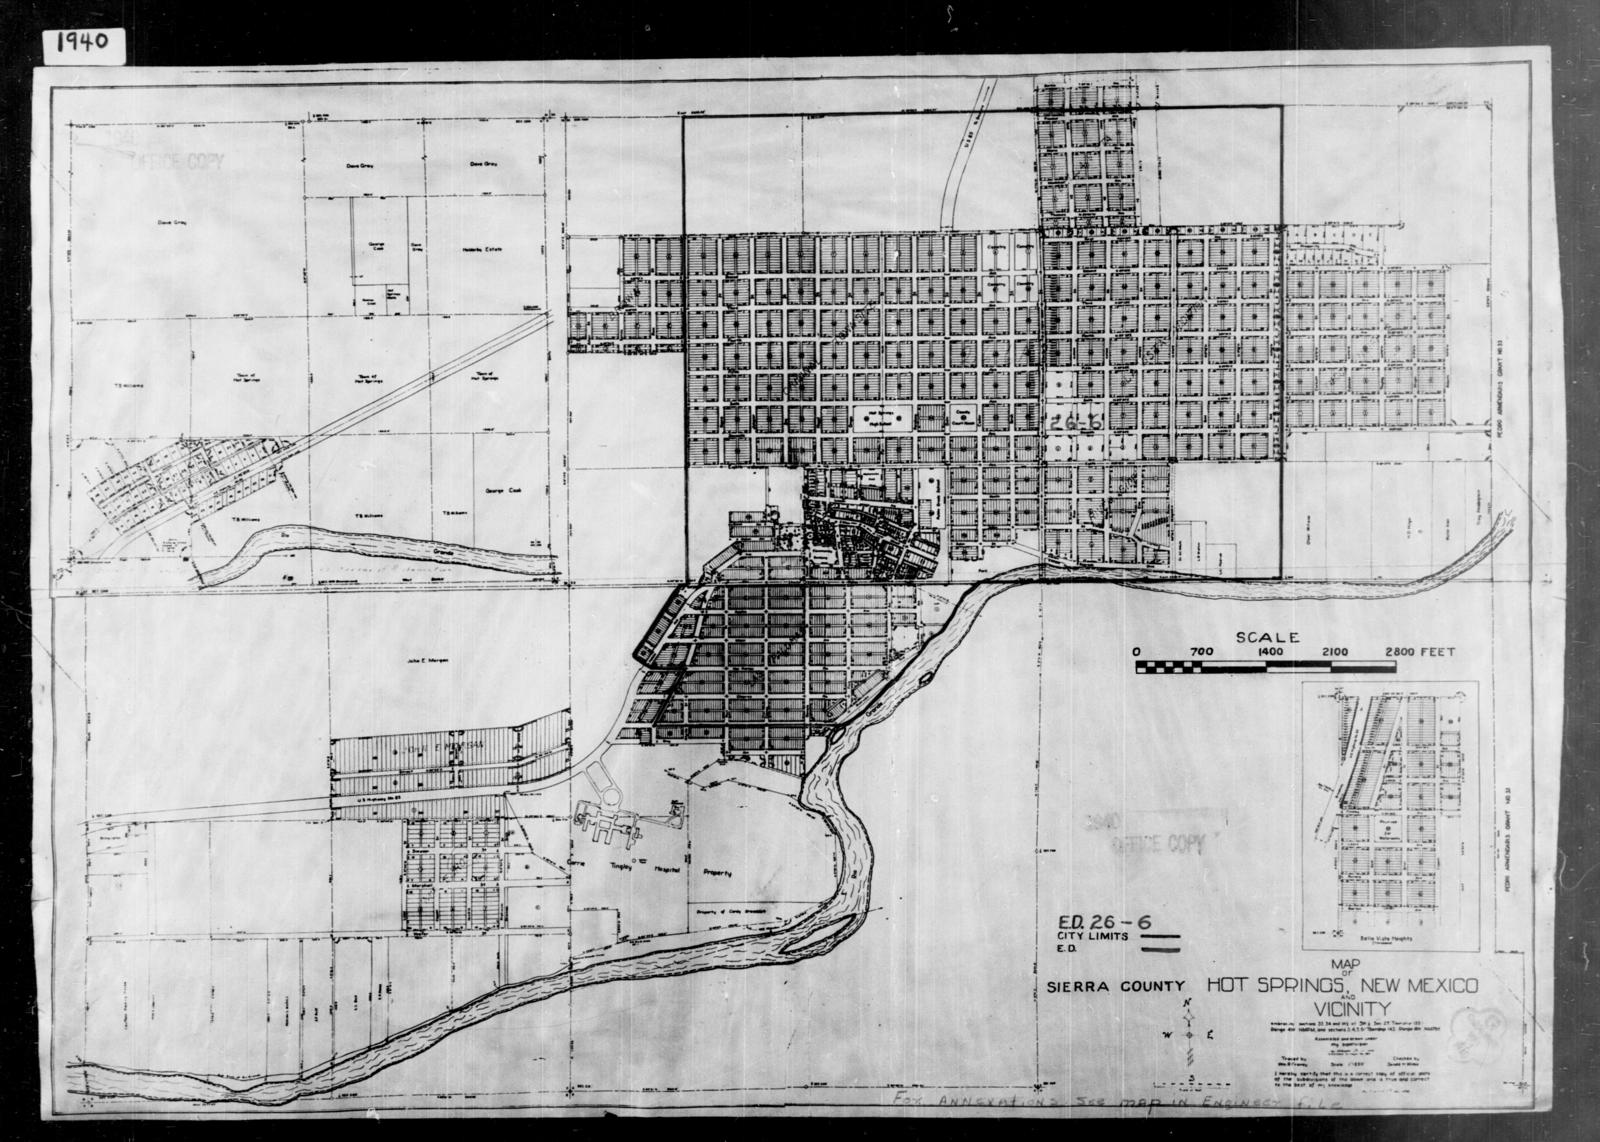 1940 Census Enumeration District Maps - New Mexico - Sierra County ...